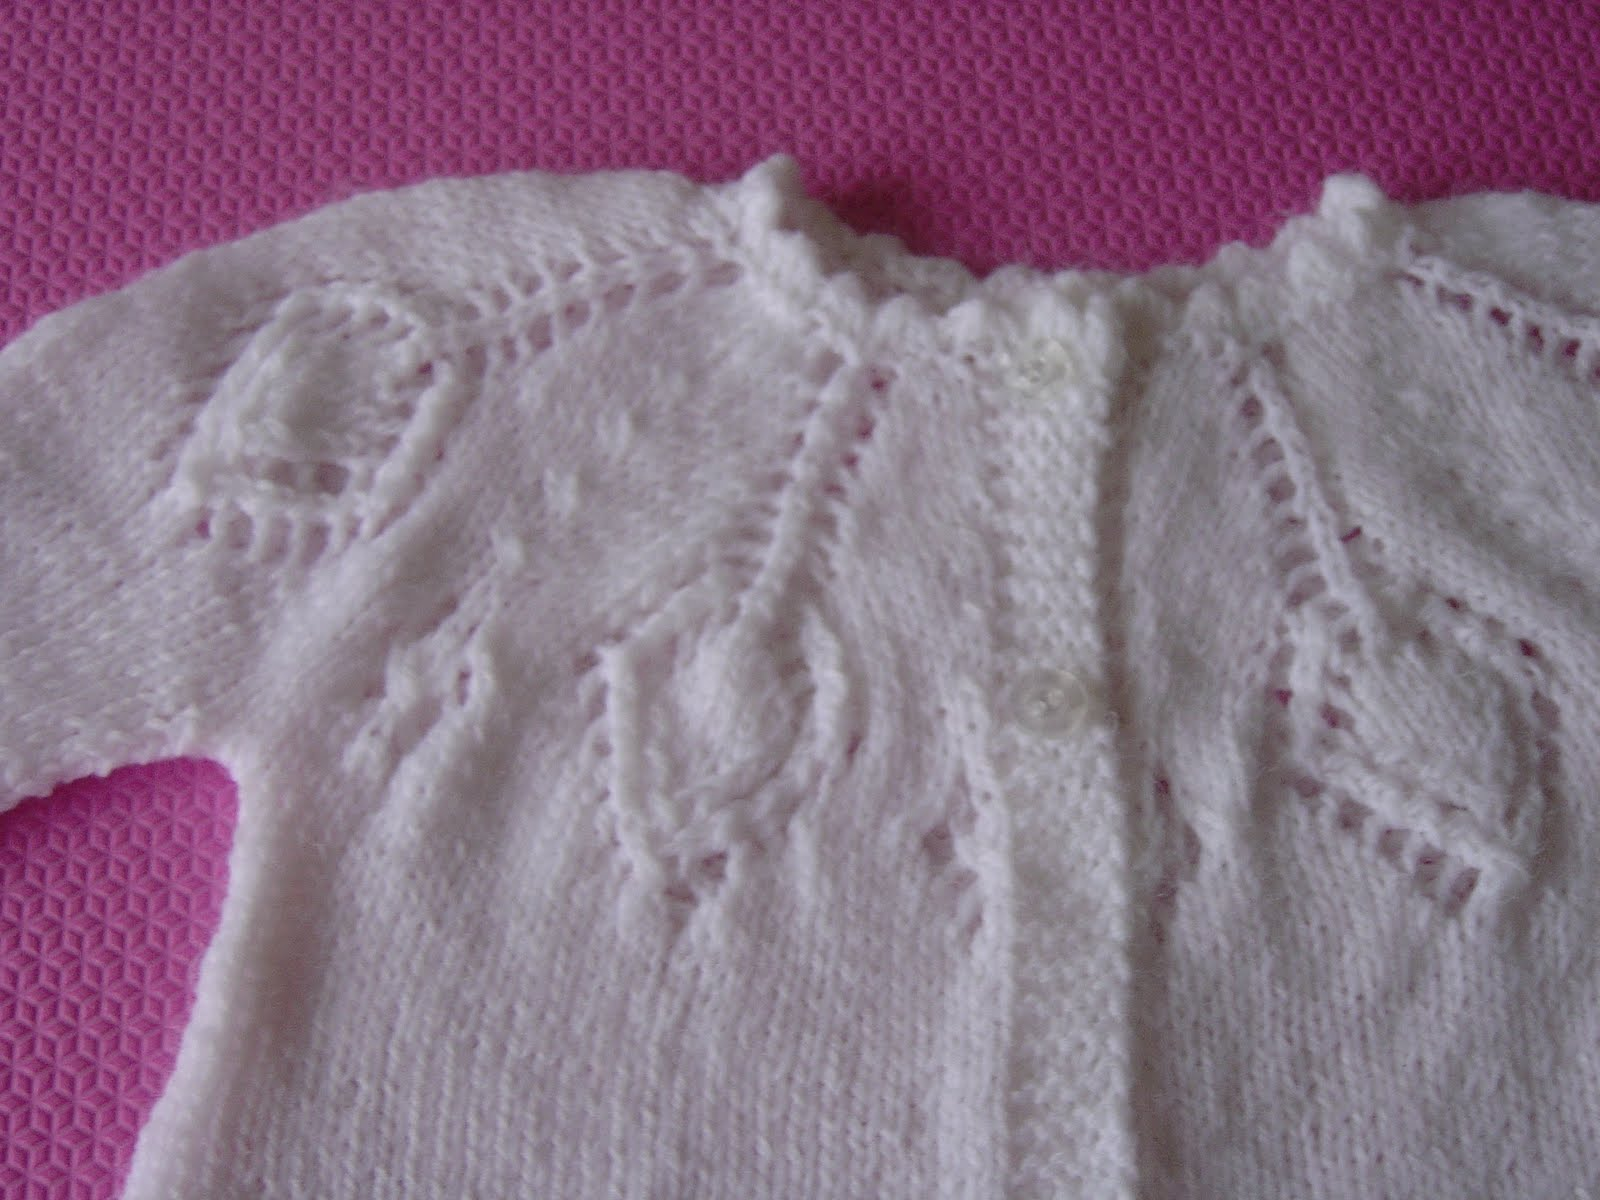 Knitting Ideas For Babies : Knitting patterns for babies cardigans « free